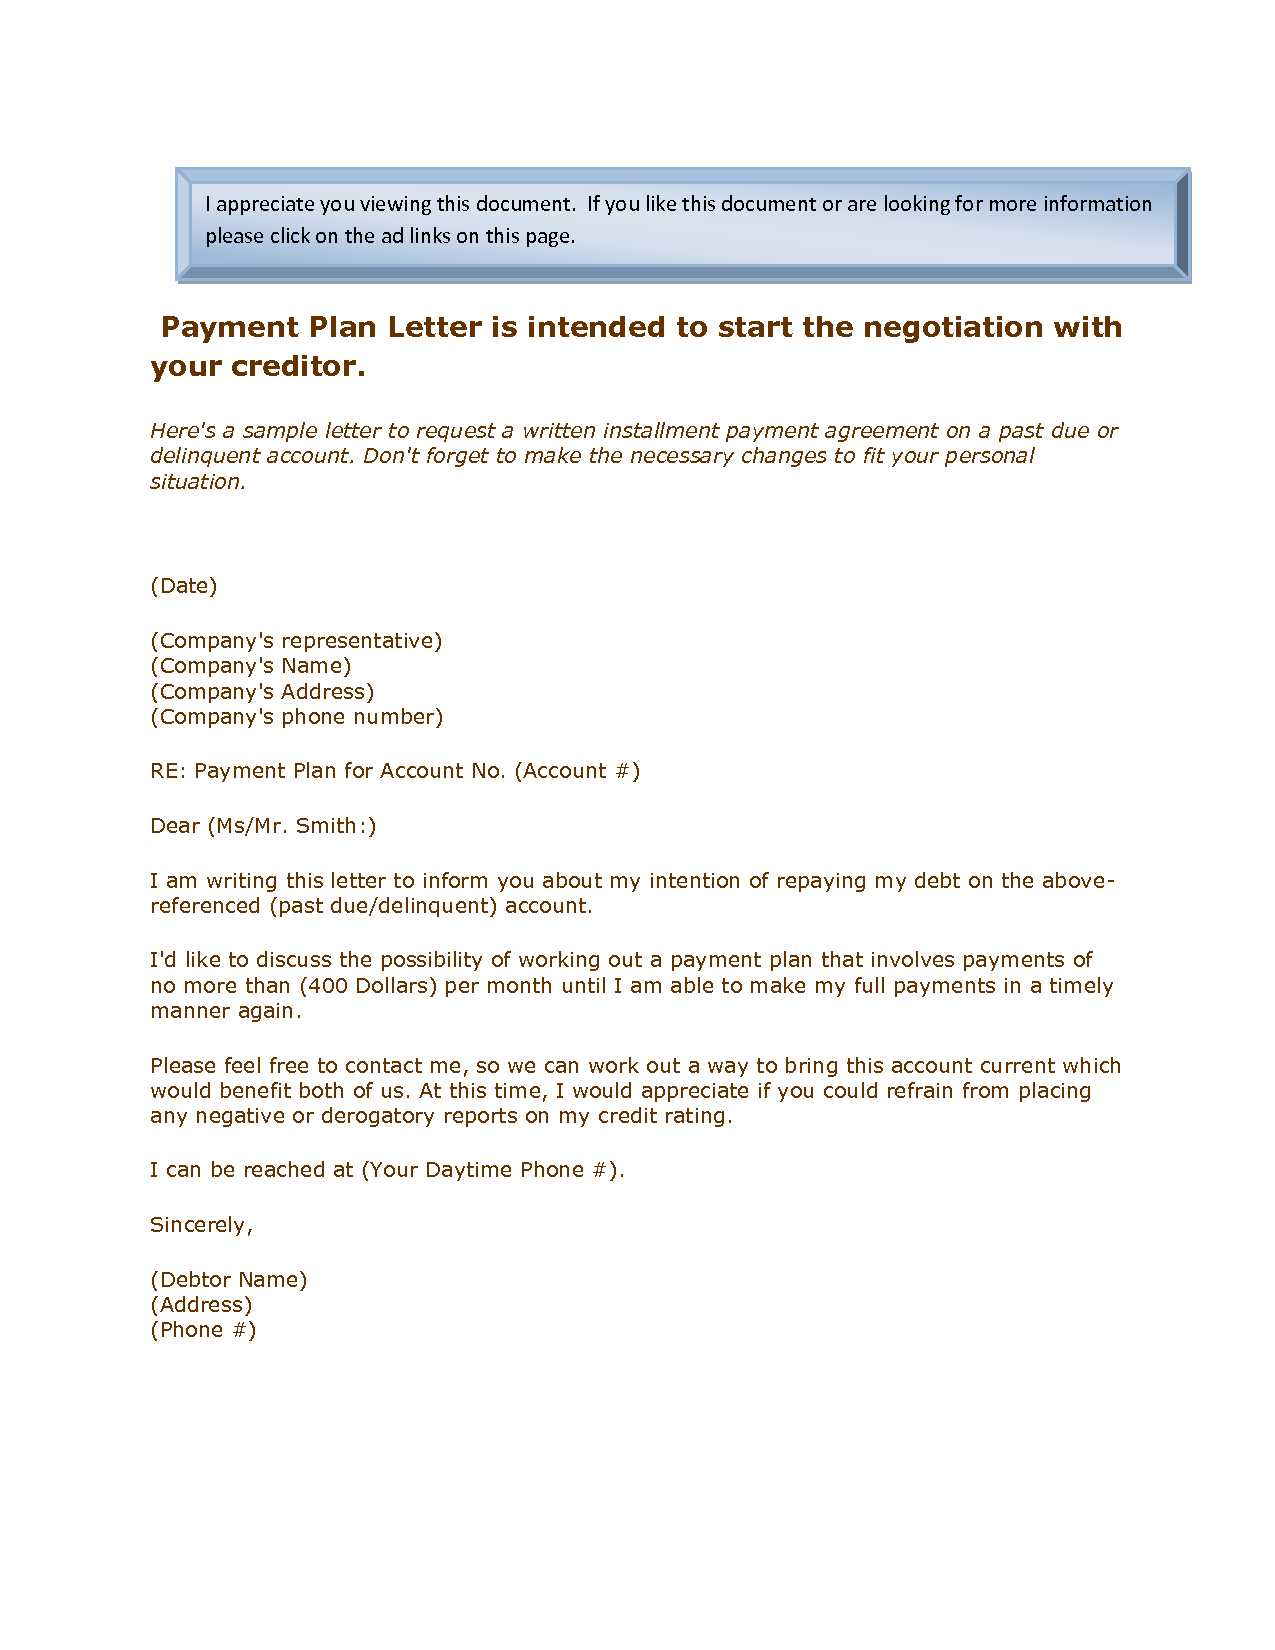 installment payment agreement letter template example-Payment Agreement Letter Examples Download by size Handphone Tablet 16-a